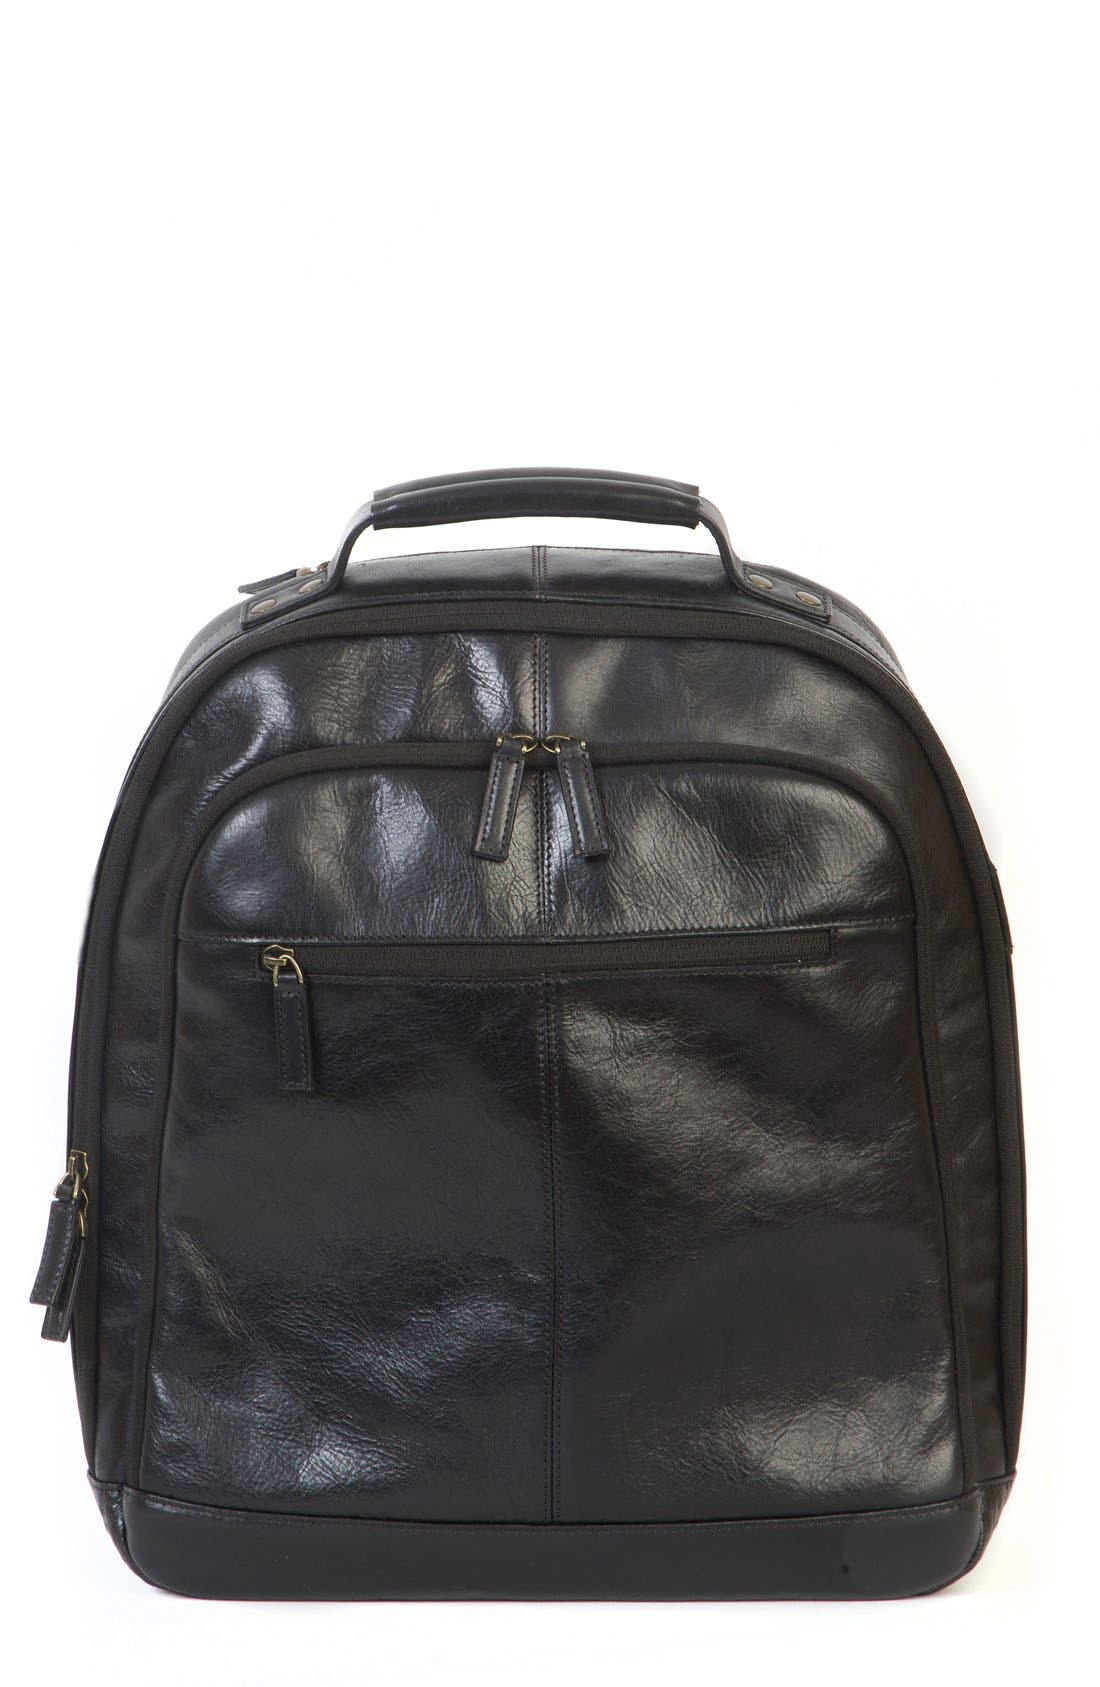 'Becker' Leather Backpack,                             Main thumbnail 1, color,                             001